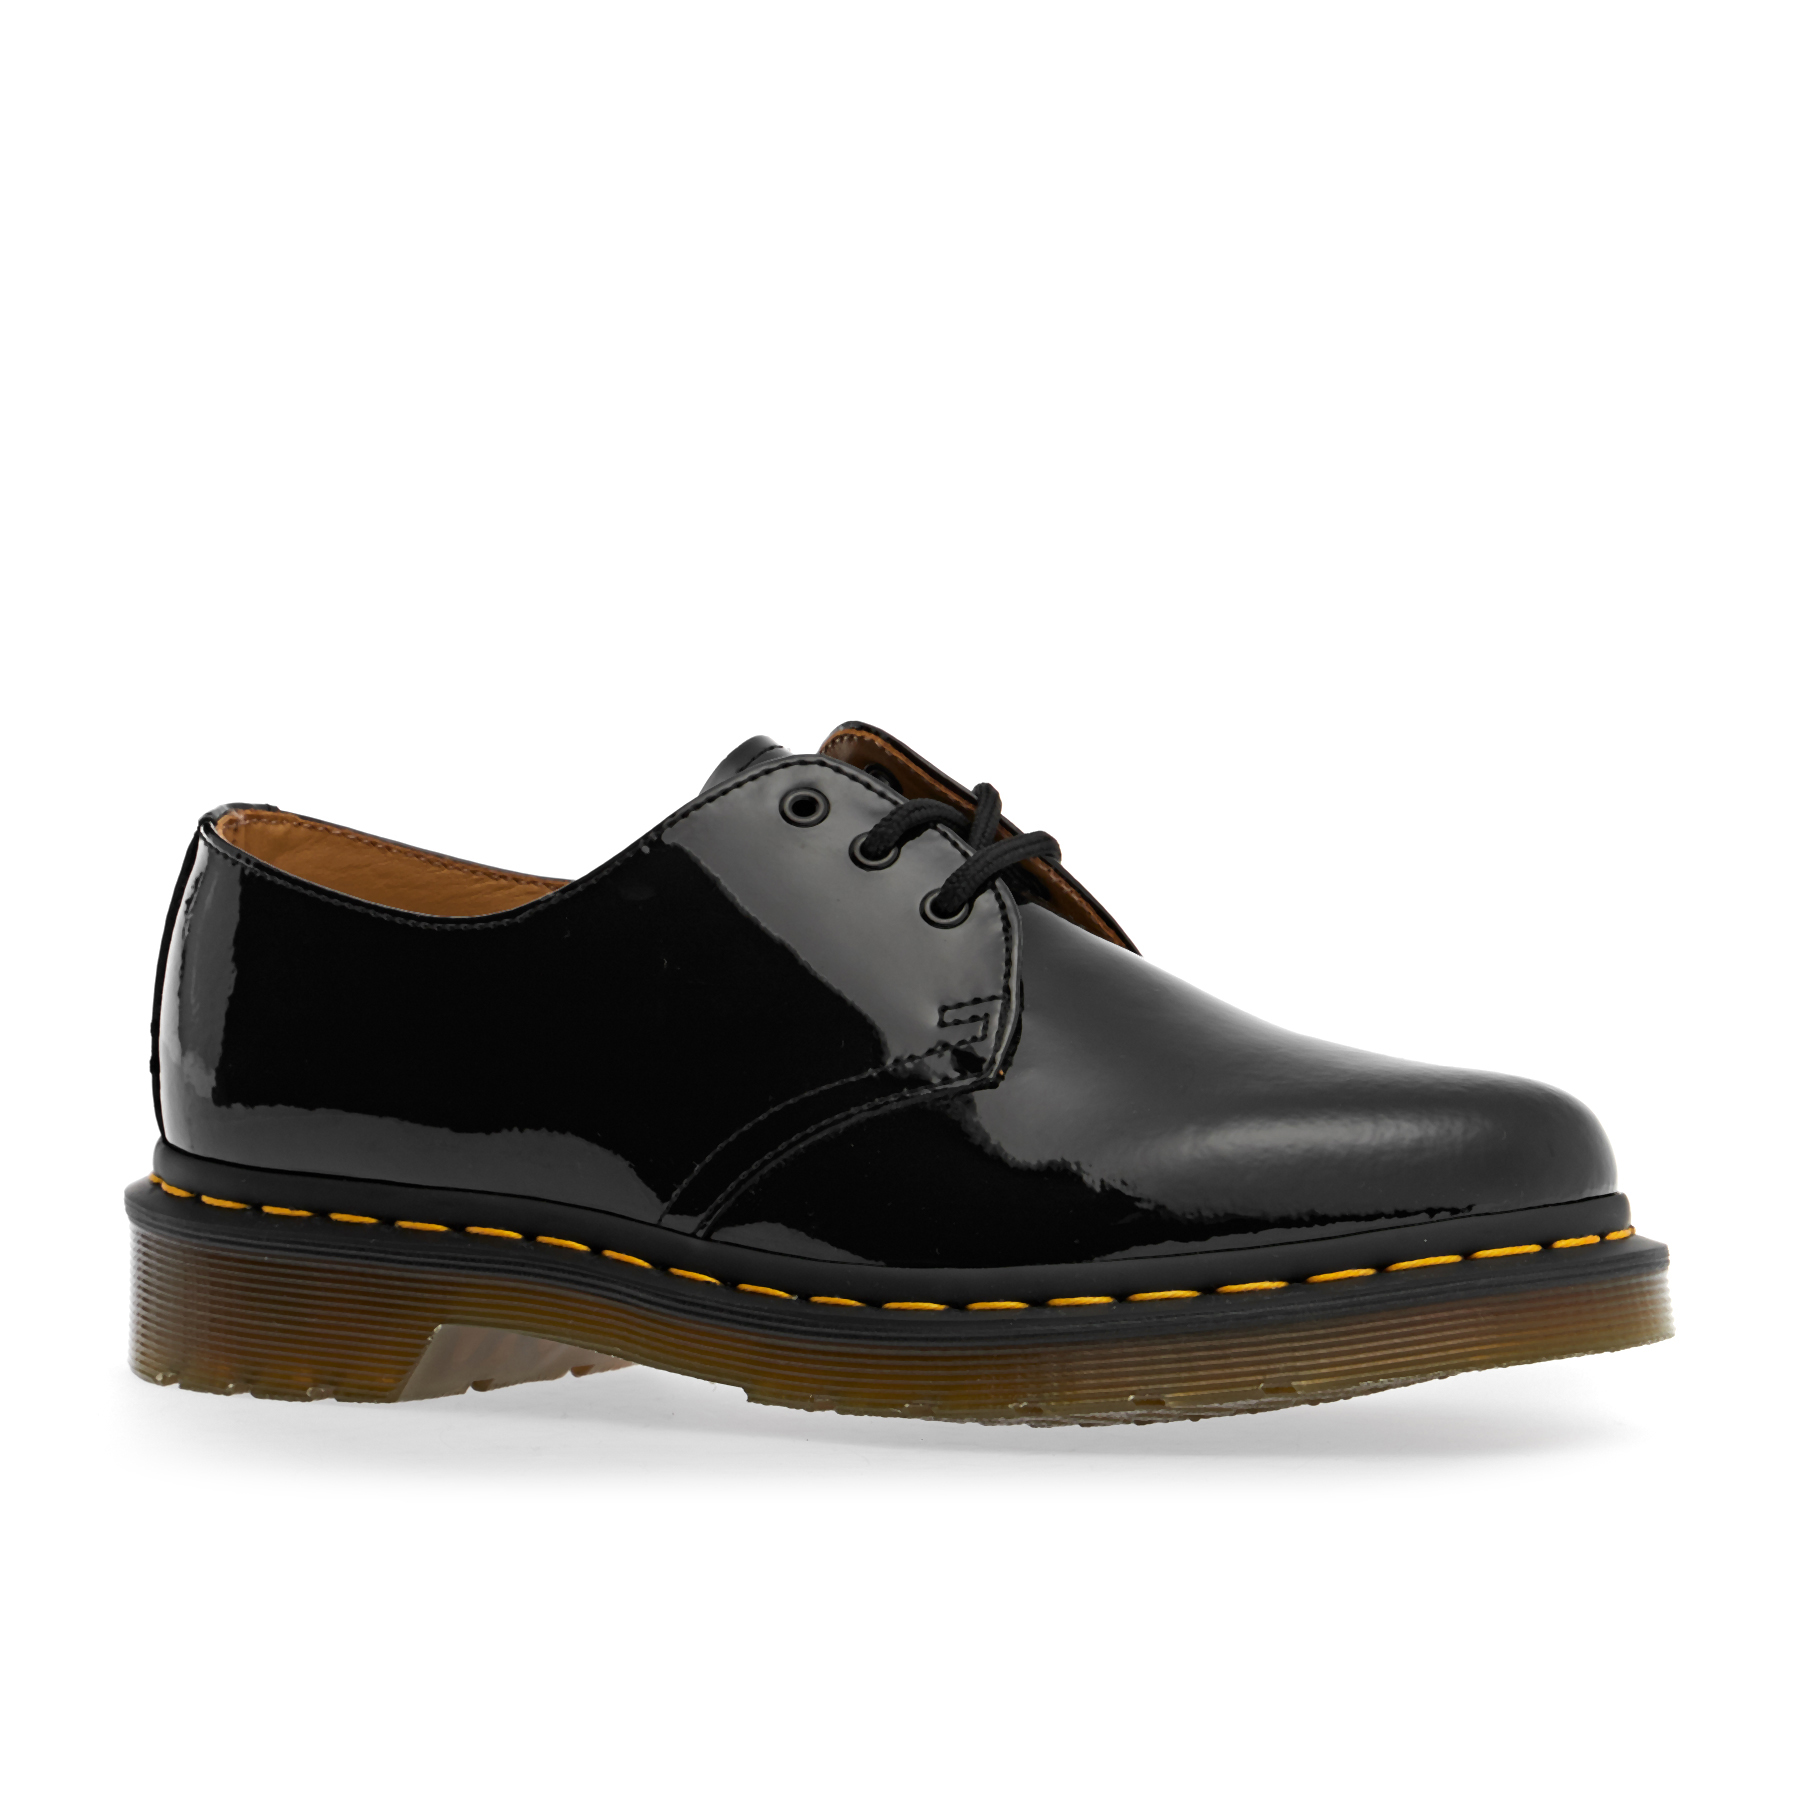 dr martens women's shoes